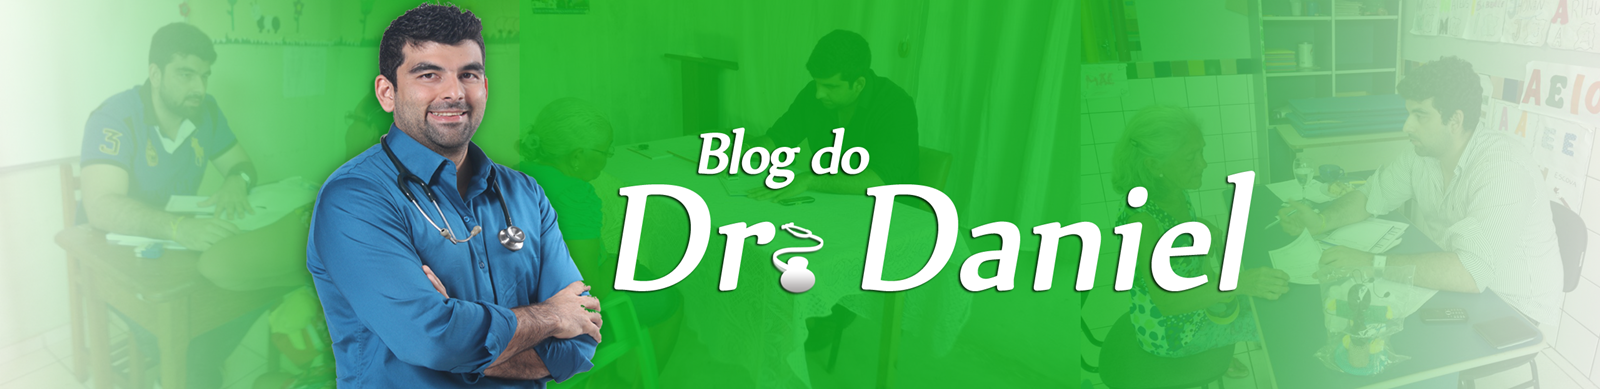 Blog do Dr. Daniel